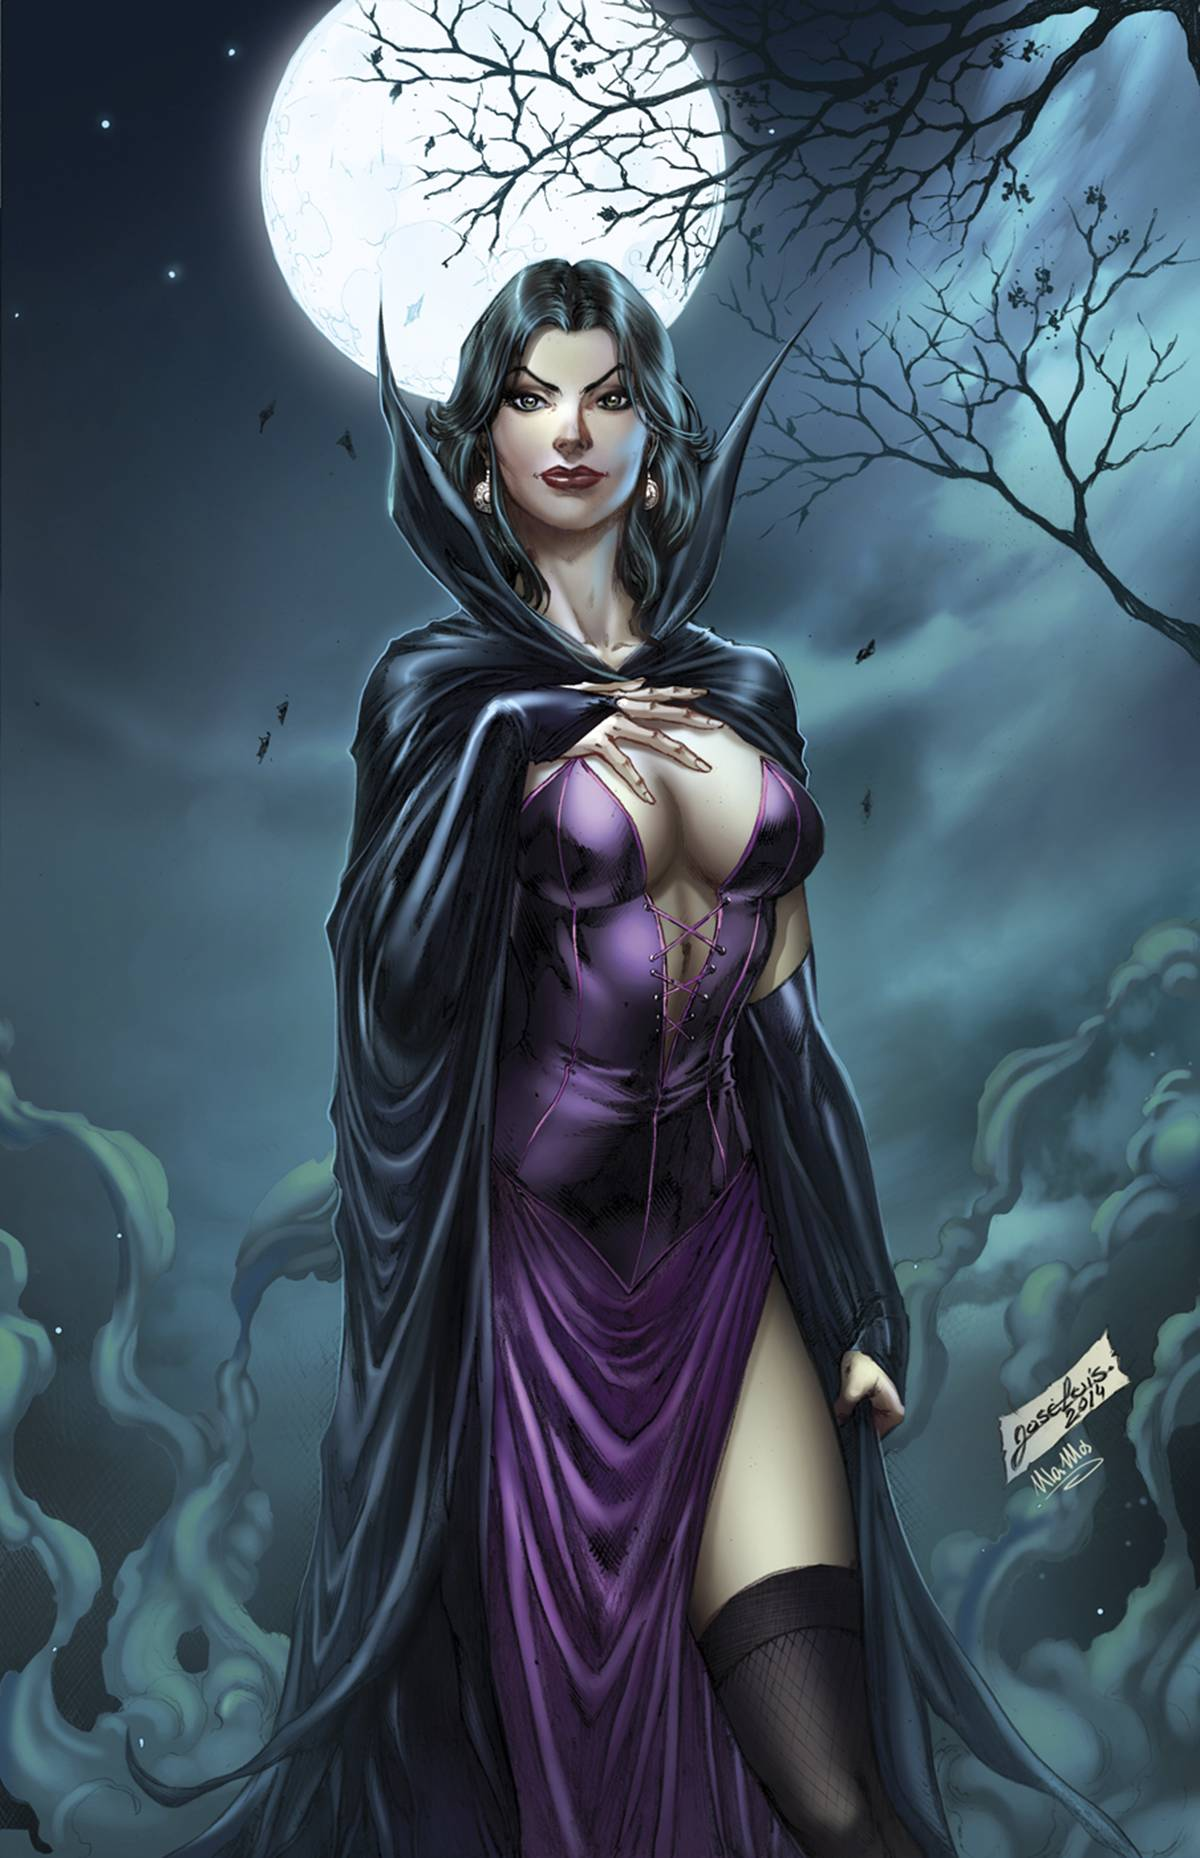 image   grimm fairy tales presents tales from oz vol 1 6 c